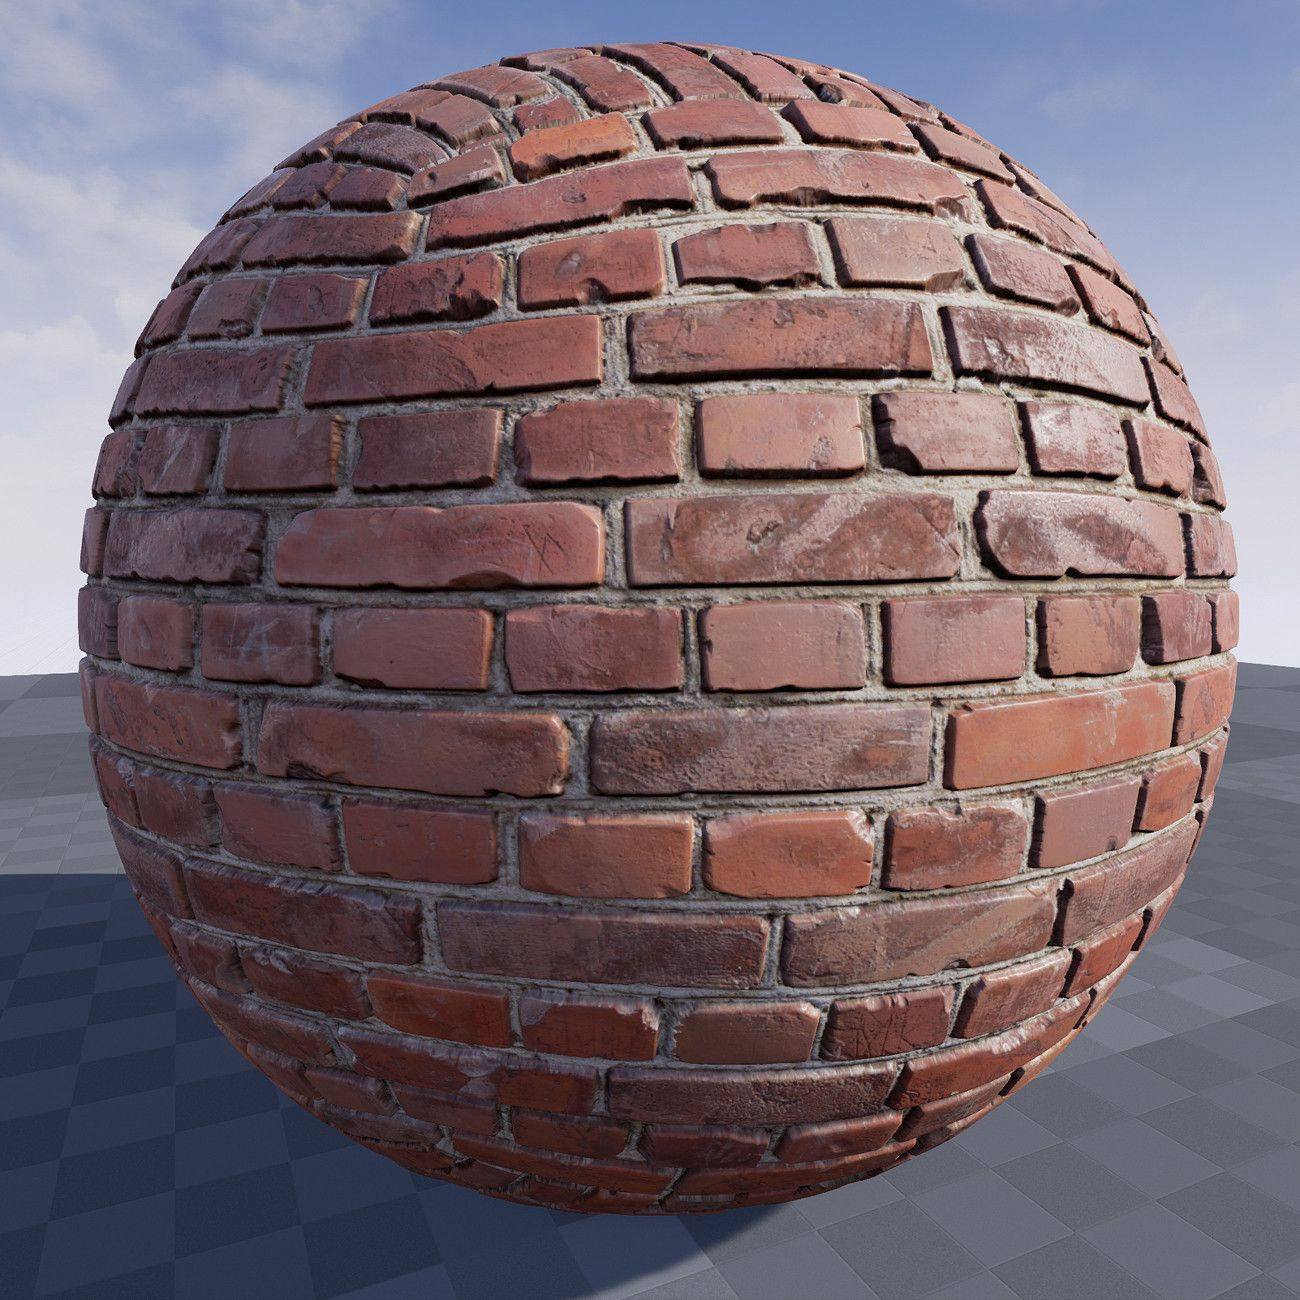 Texture of brick wall in Unreal Engine 4.9, Crazy Textures on ArtStation at https://www.artstation.com/artwork/lzVbG